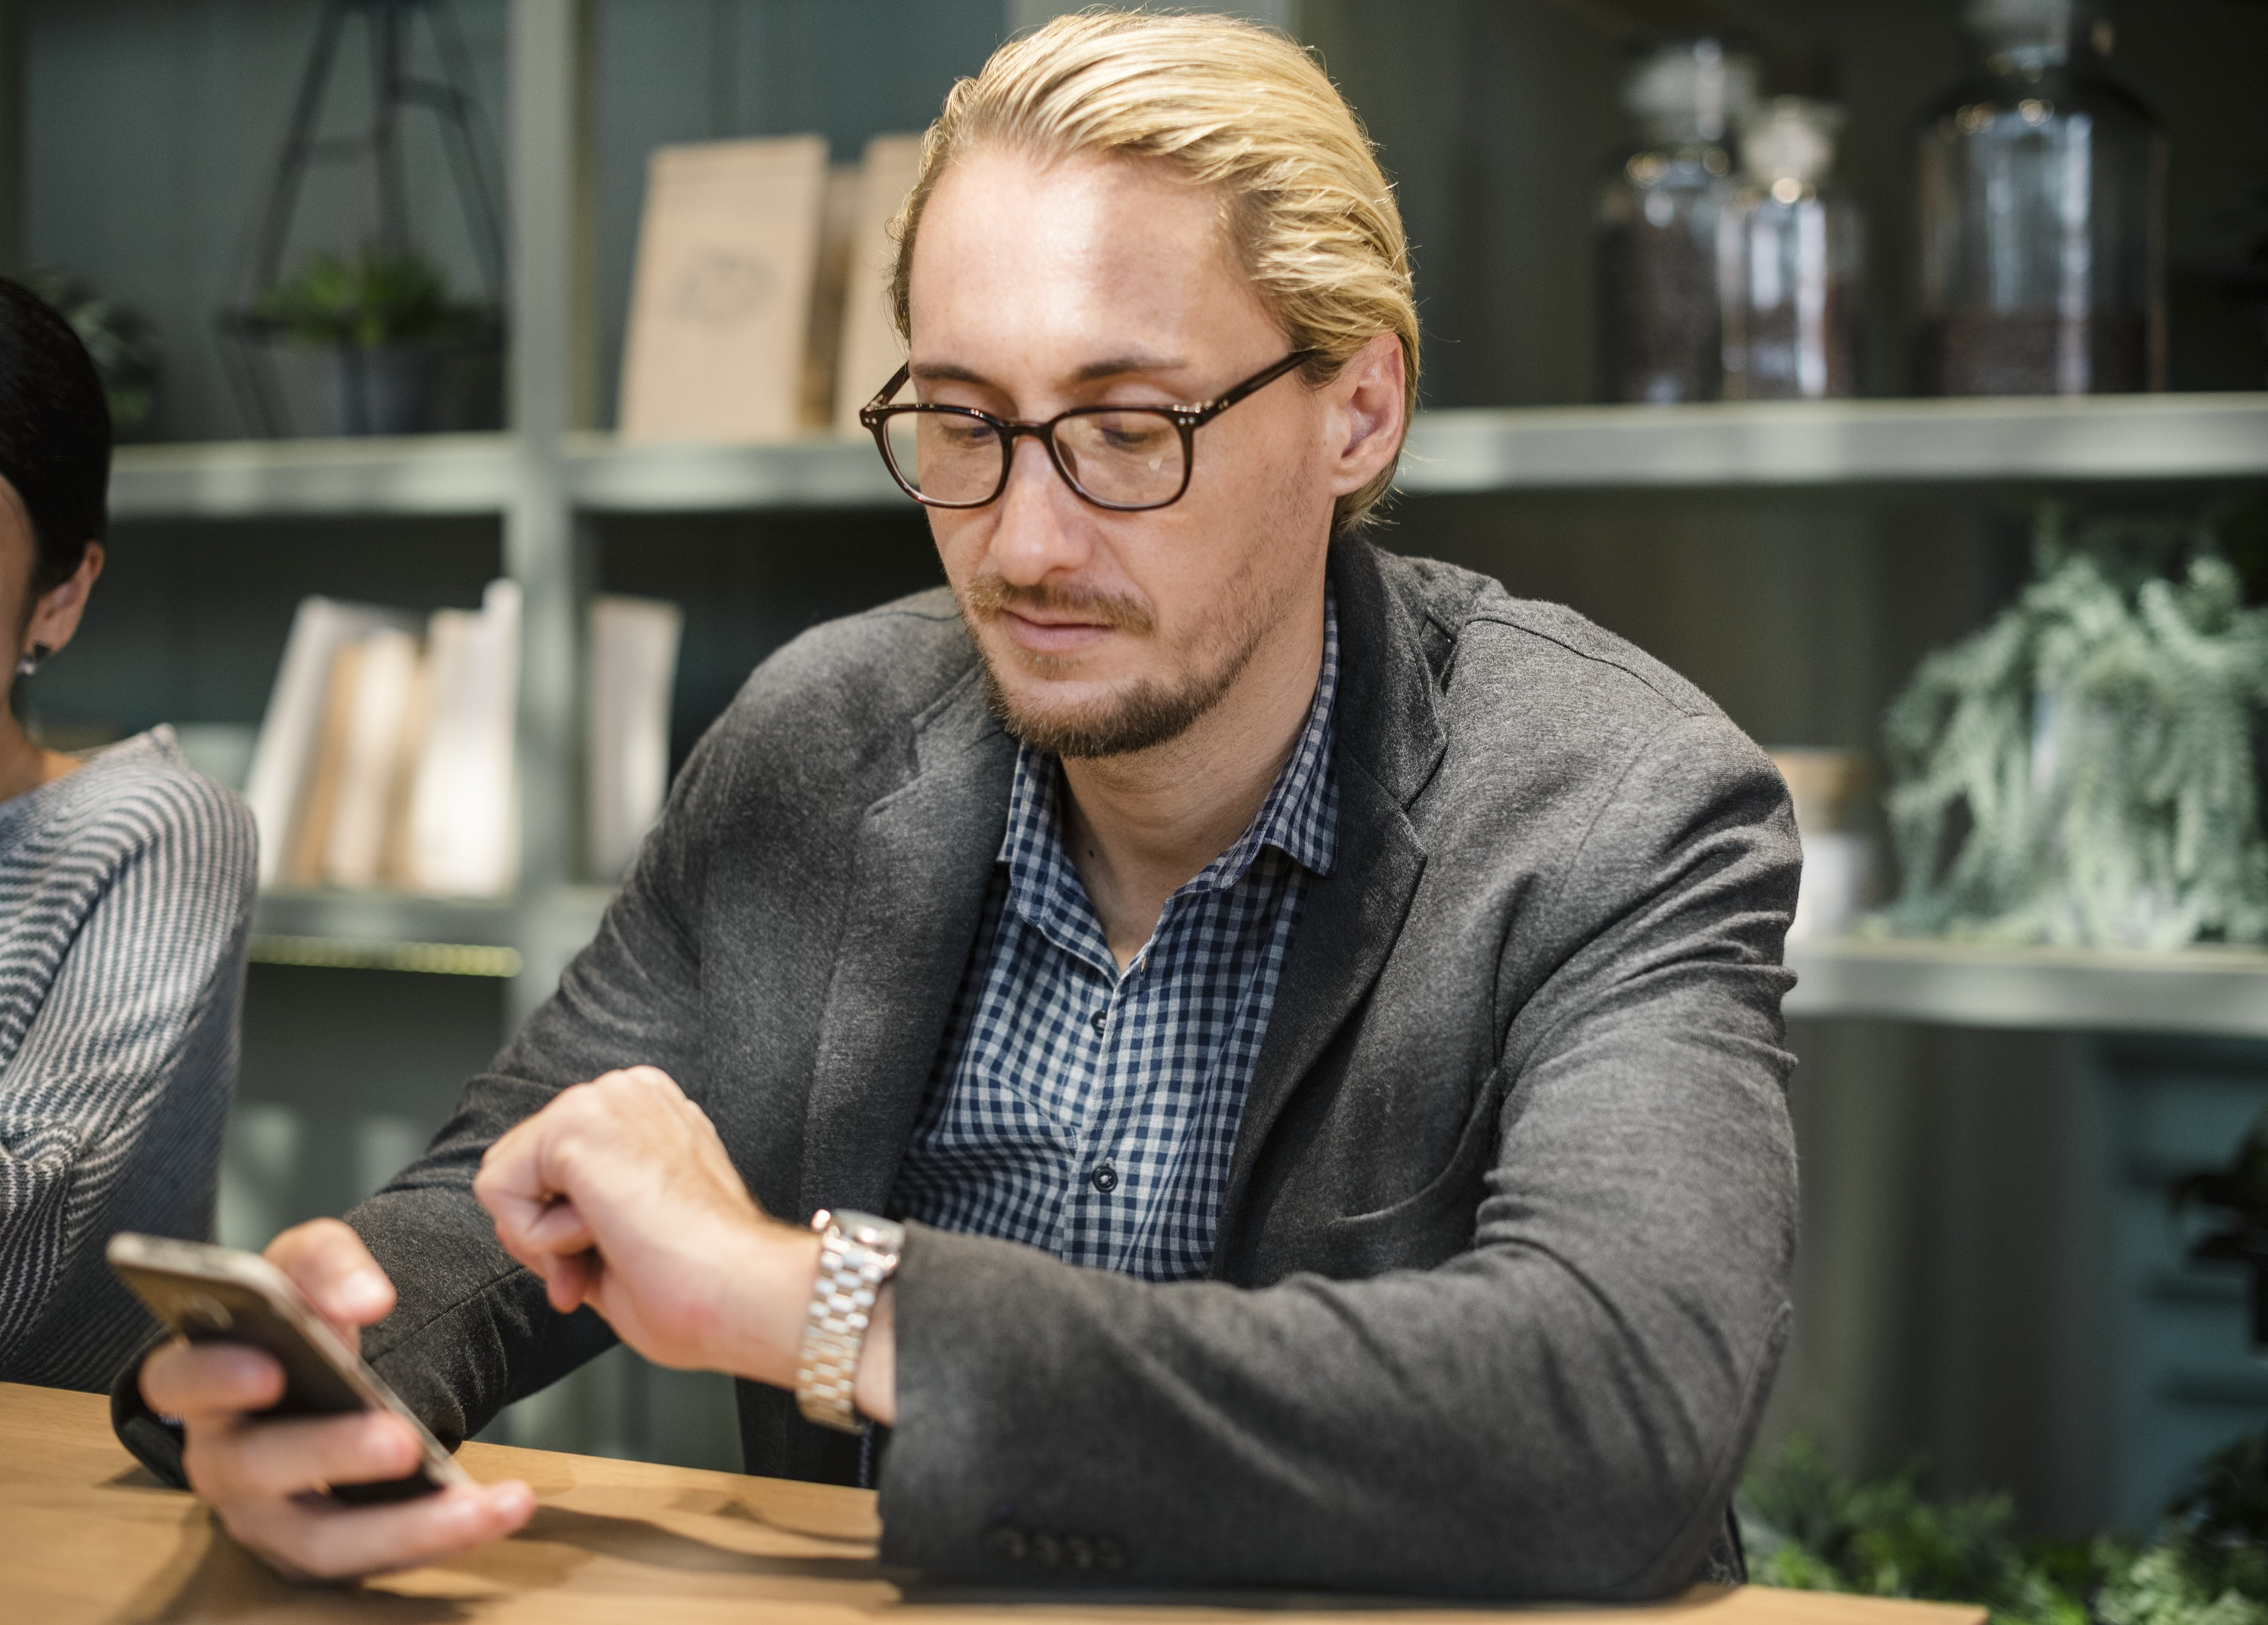 man looking at round silver-colored watch with steel link strap